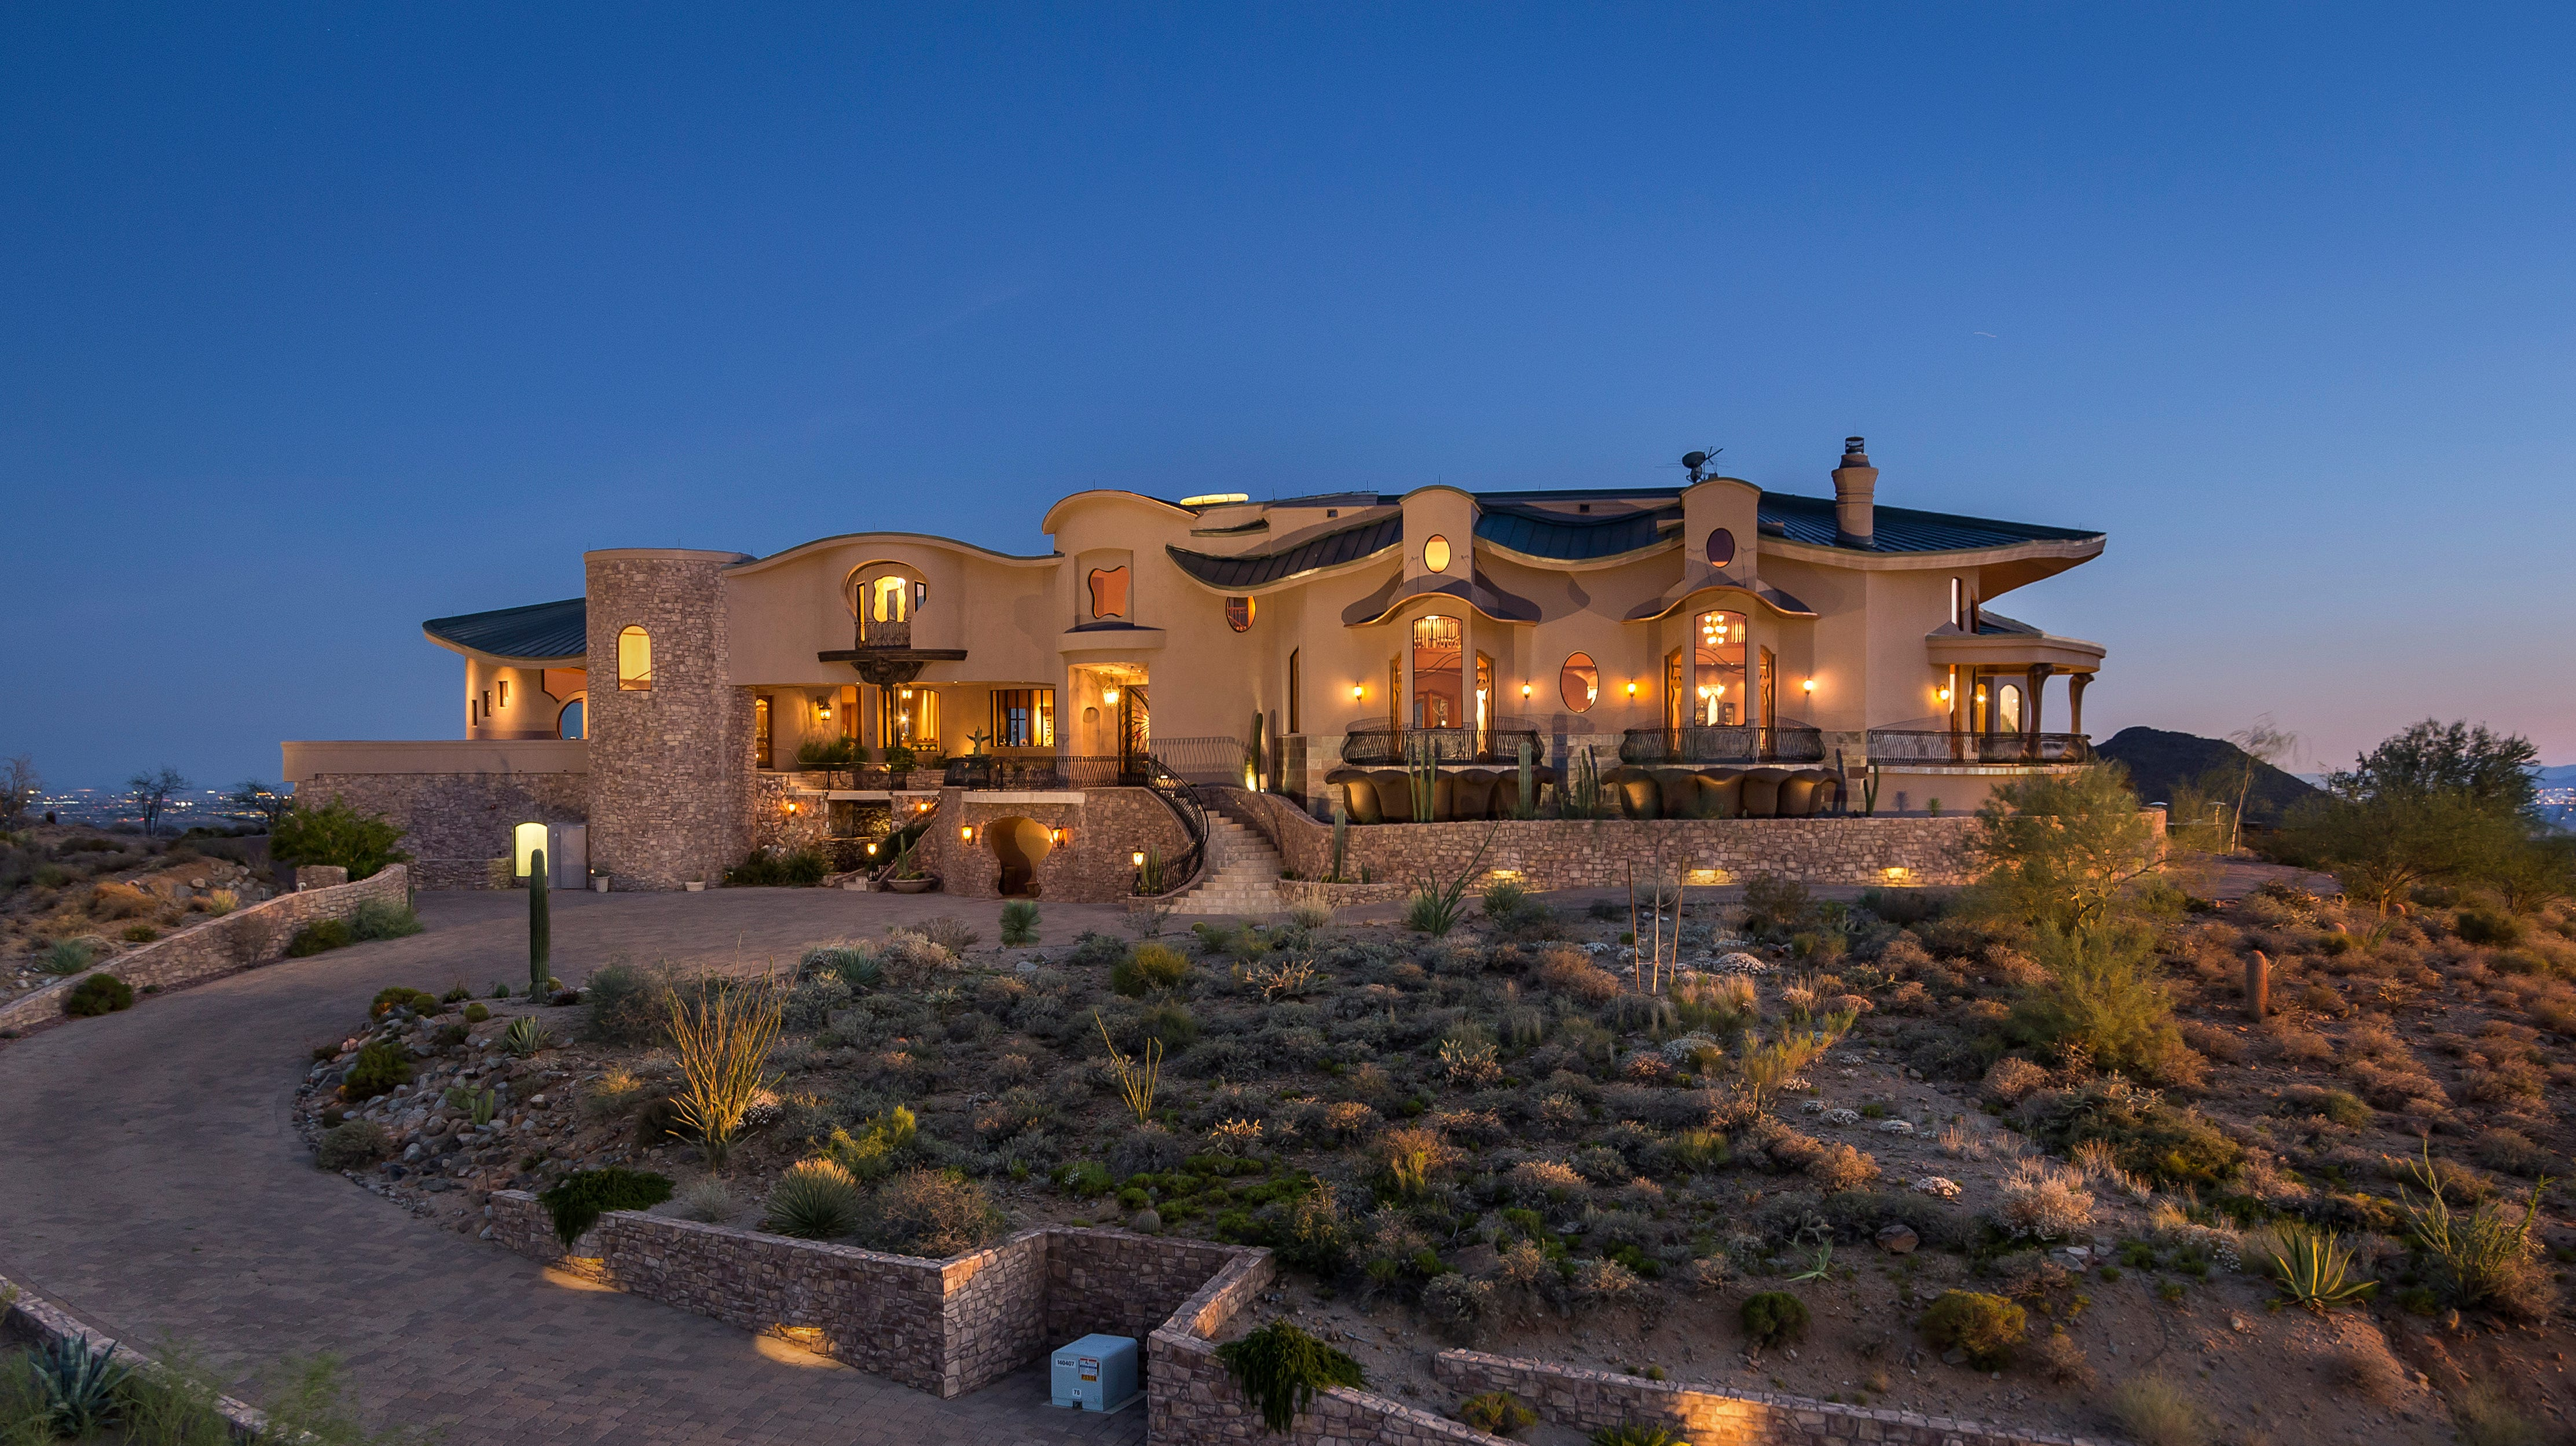 Fountain Hills 'Butterfly home' sells to Chinese buyer for $3.3M